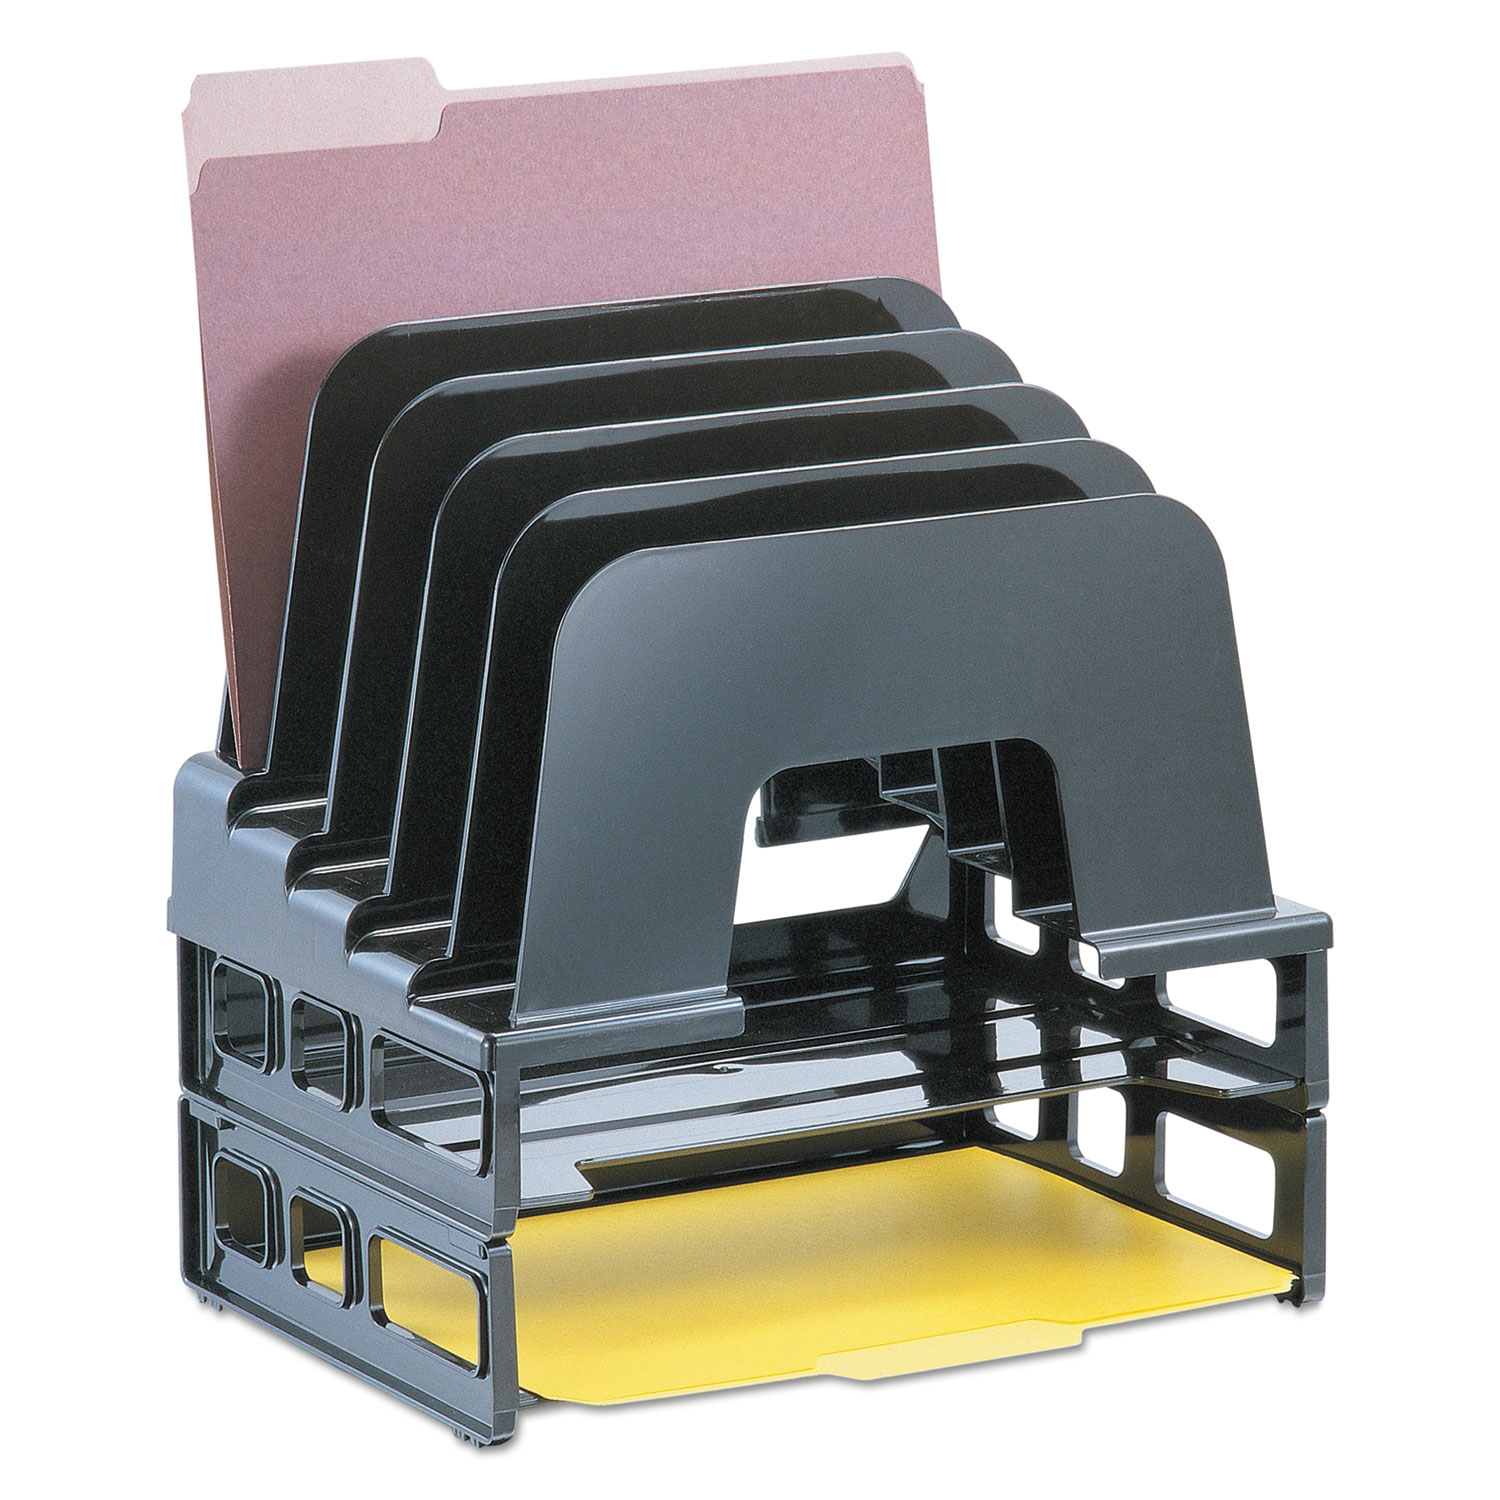 ergonomic chair request letter leg sliders incline sorter by officemate oic22112 ontimesupplies